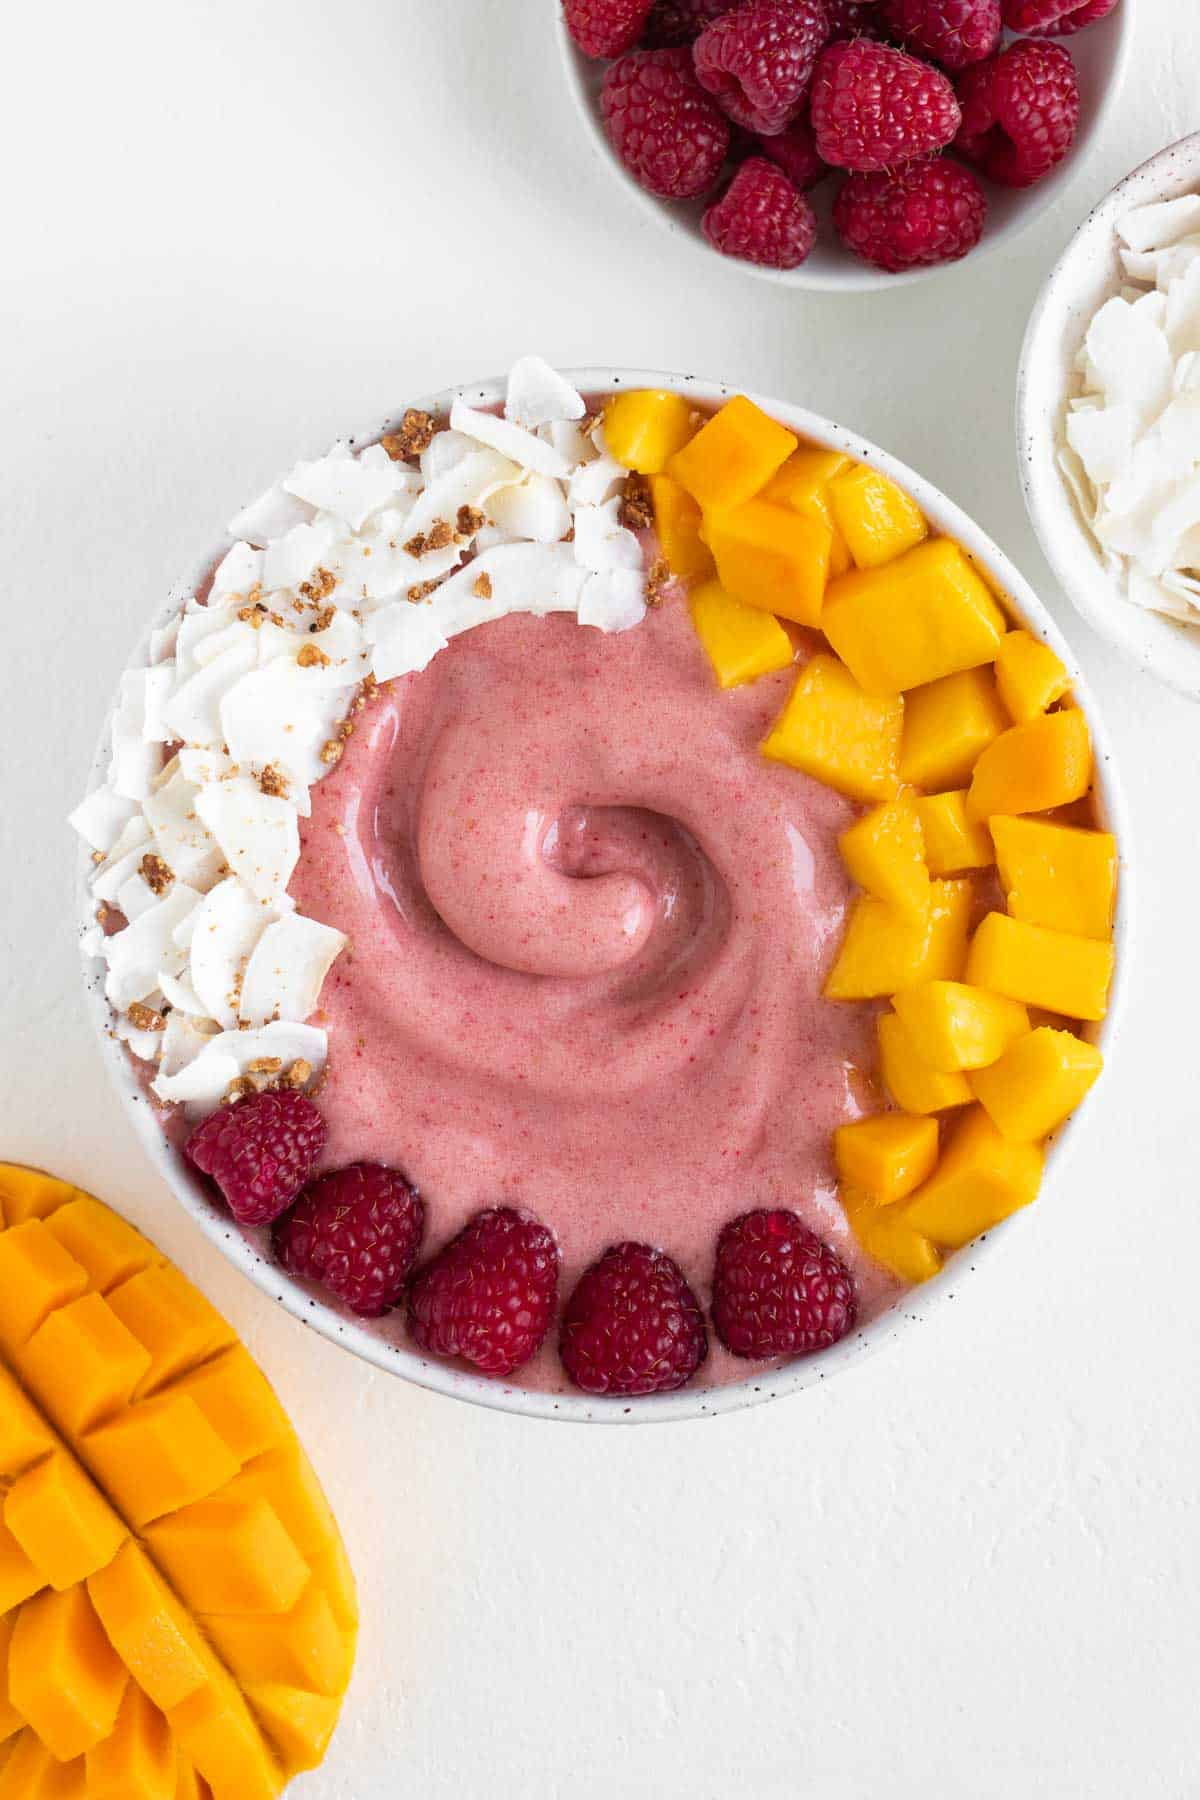 a raspberry mango smoothie bowl surrounded by a bowl of berries, a bowl of coconut, and a sliced mango